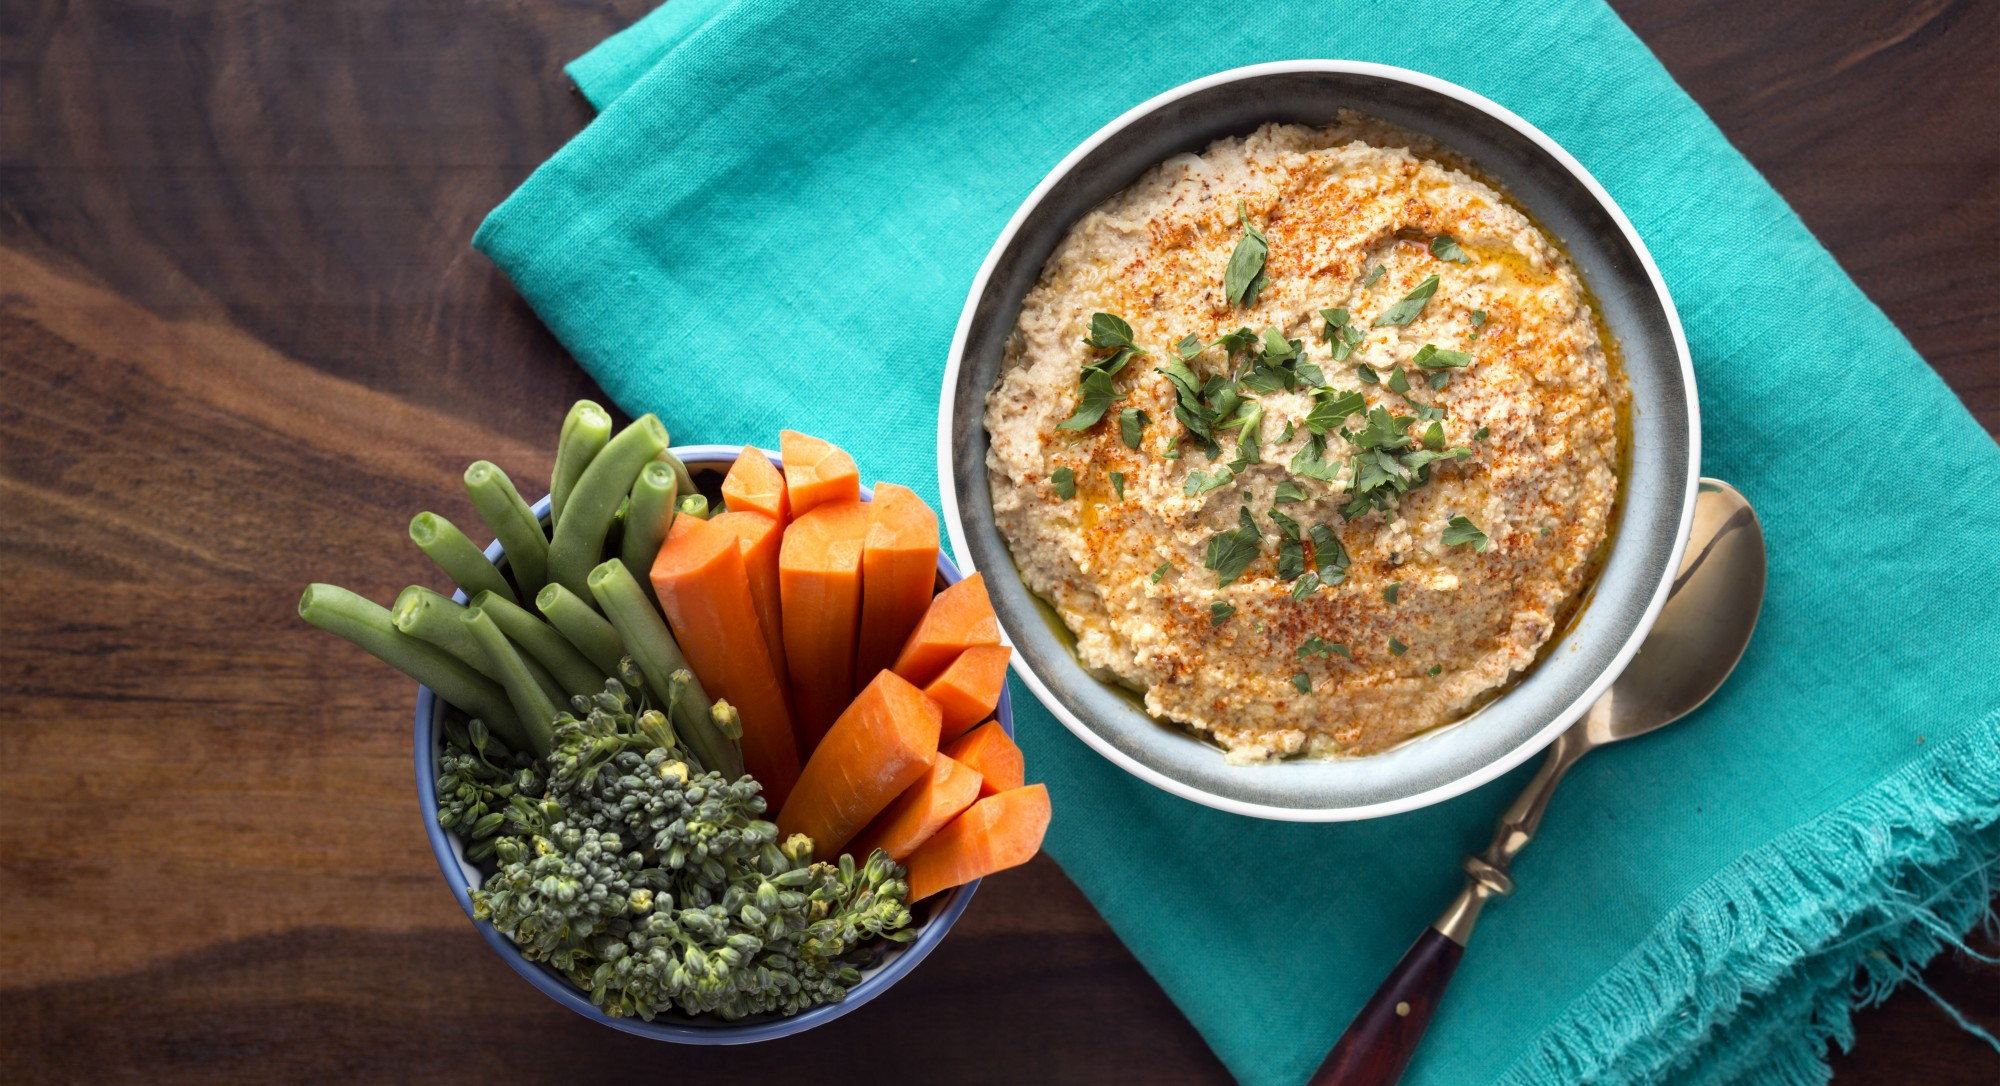 Discover the Delicious Secret Behind This Lightened-Up Hummus